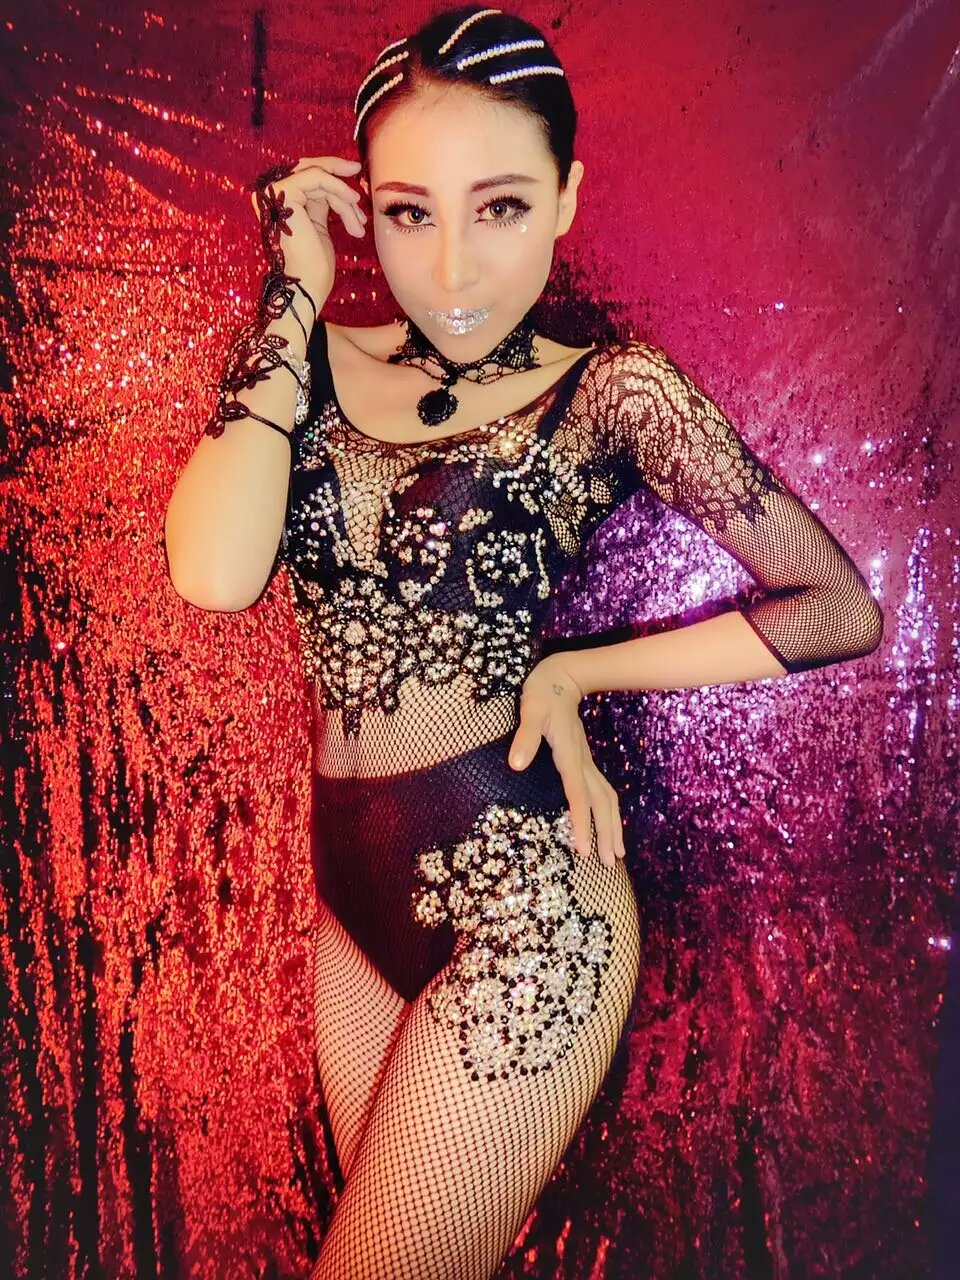 Nightclub Black Rhinestones Jumpsuits Sexy Mesh Perspective Bodysuit Stage Dance Wear Women's Evening Celebrate Singer Costume